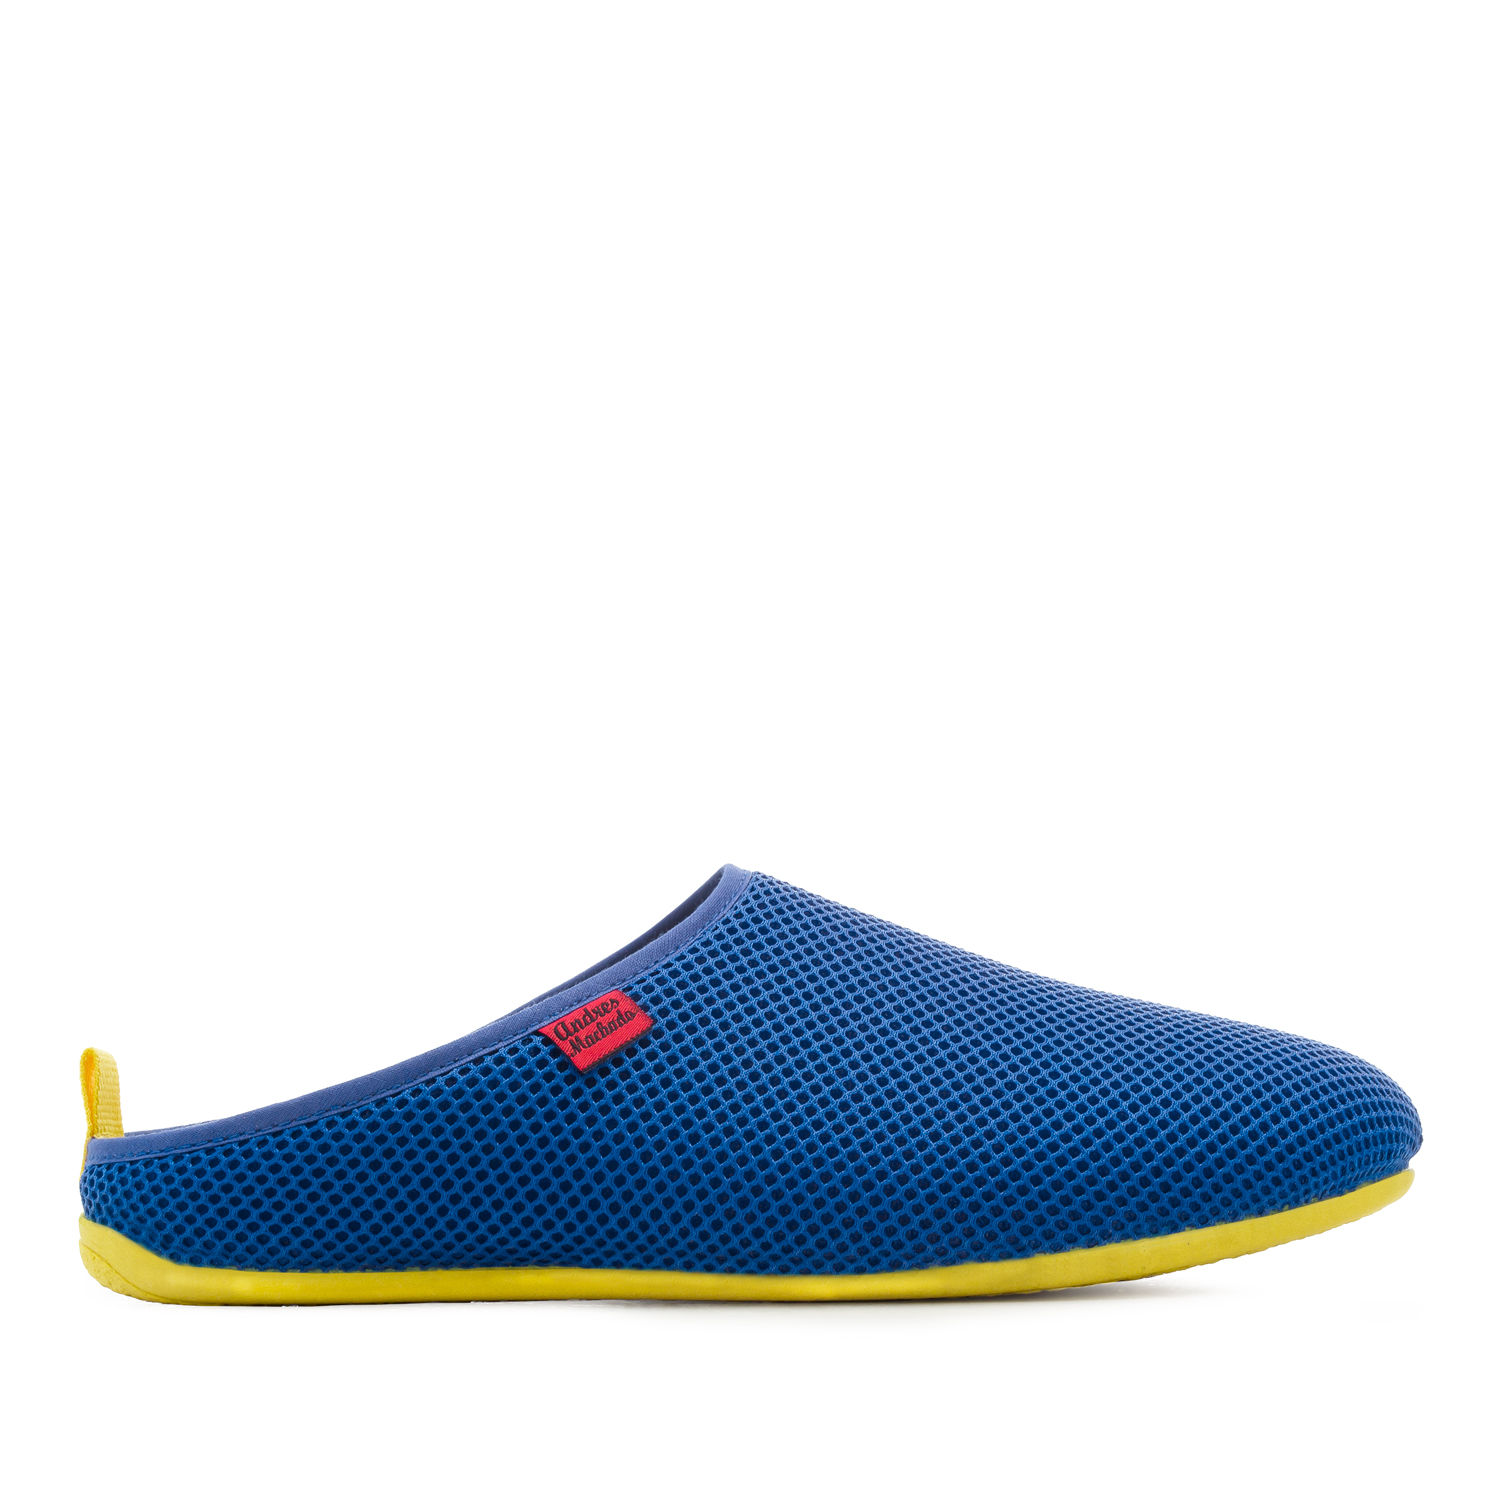 Spring/ Summer Unisex Slippers in Klein Blue mesh with Yellow outsole